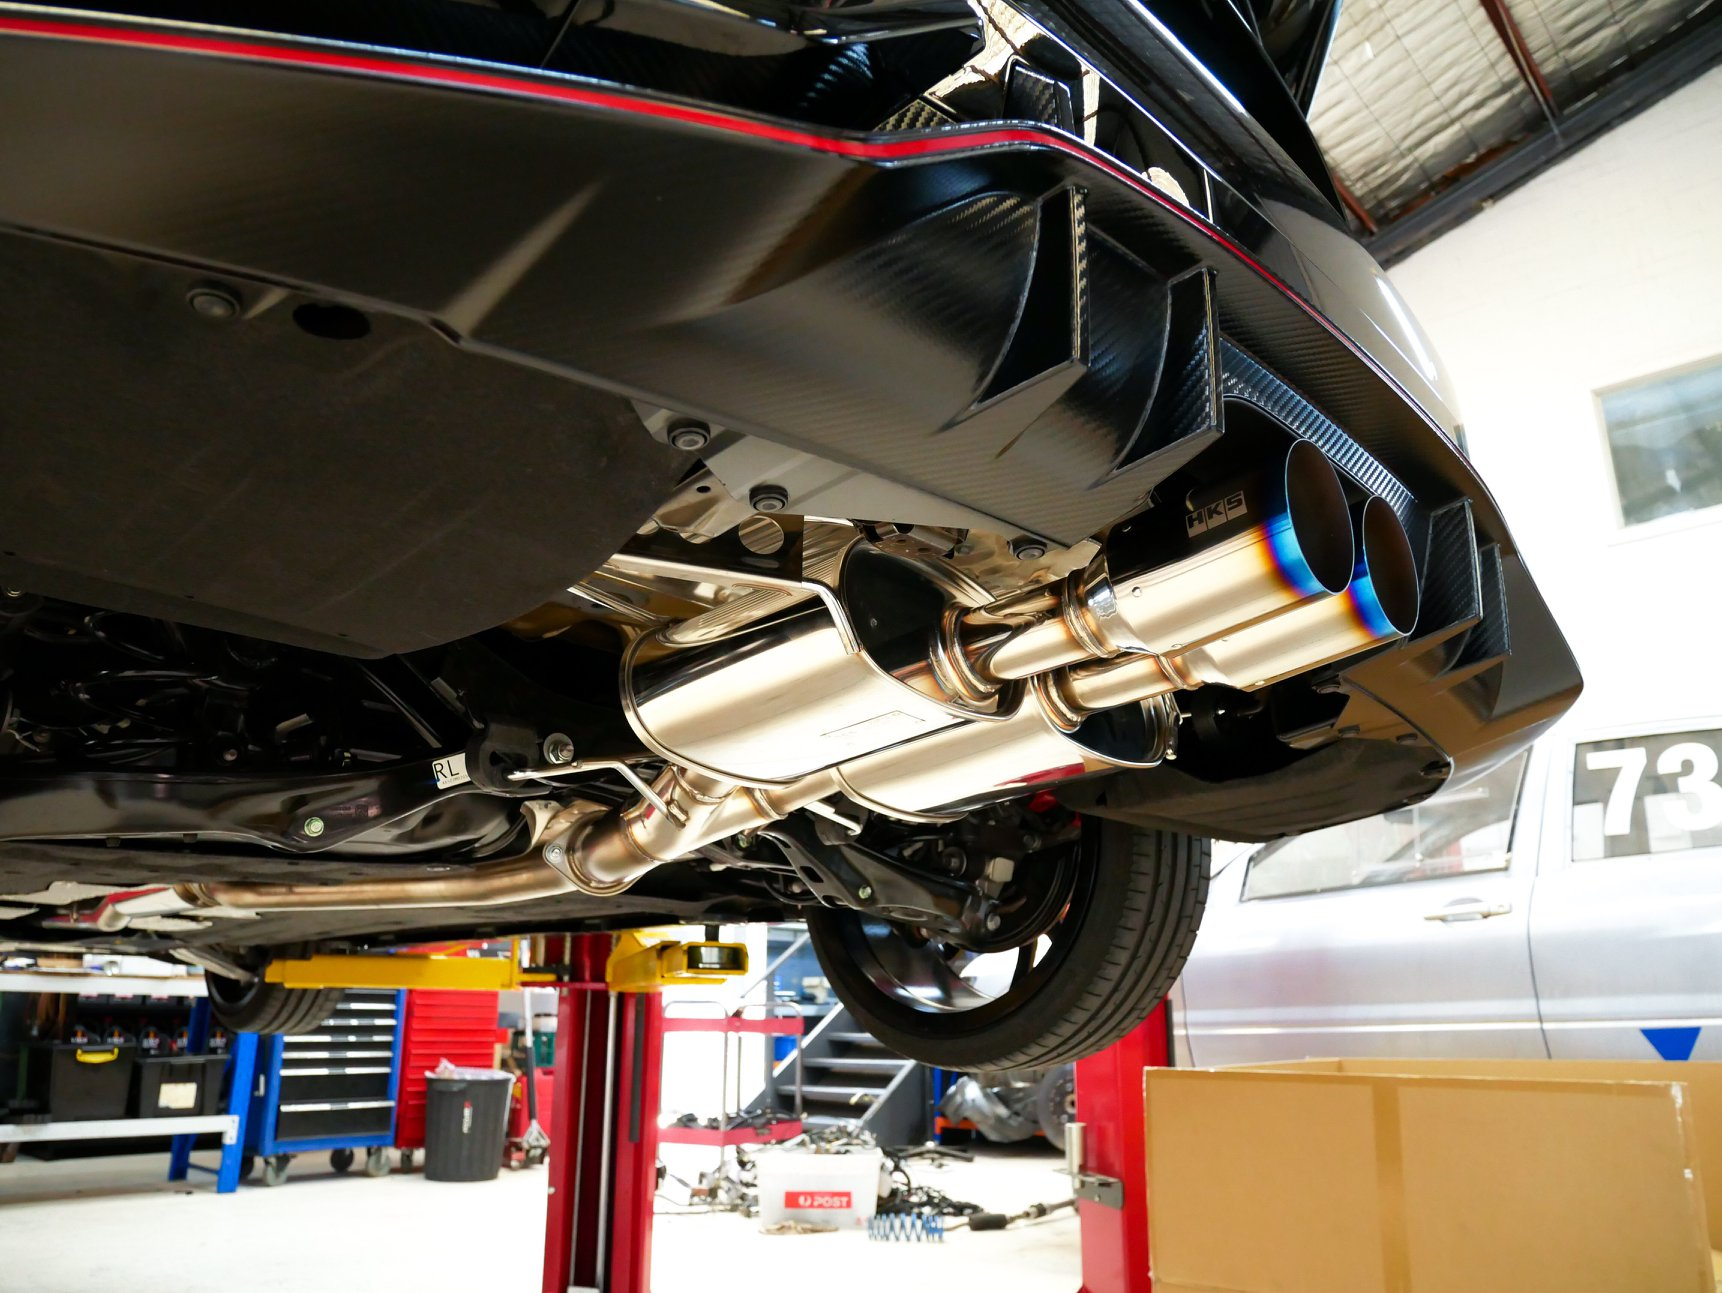 Performance Upgrades 7 Performance Upgrades From fitting an off the shelf exhaust systems, to a fully customised exhaust system for your car, we can do it all here at RevZone. Our years of experience allow us to provide you with the best available system for whatever your budget is. Some popular exhaust brands we stock are HKS, Fujitsubo and Invidia.